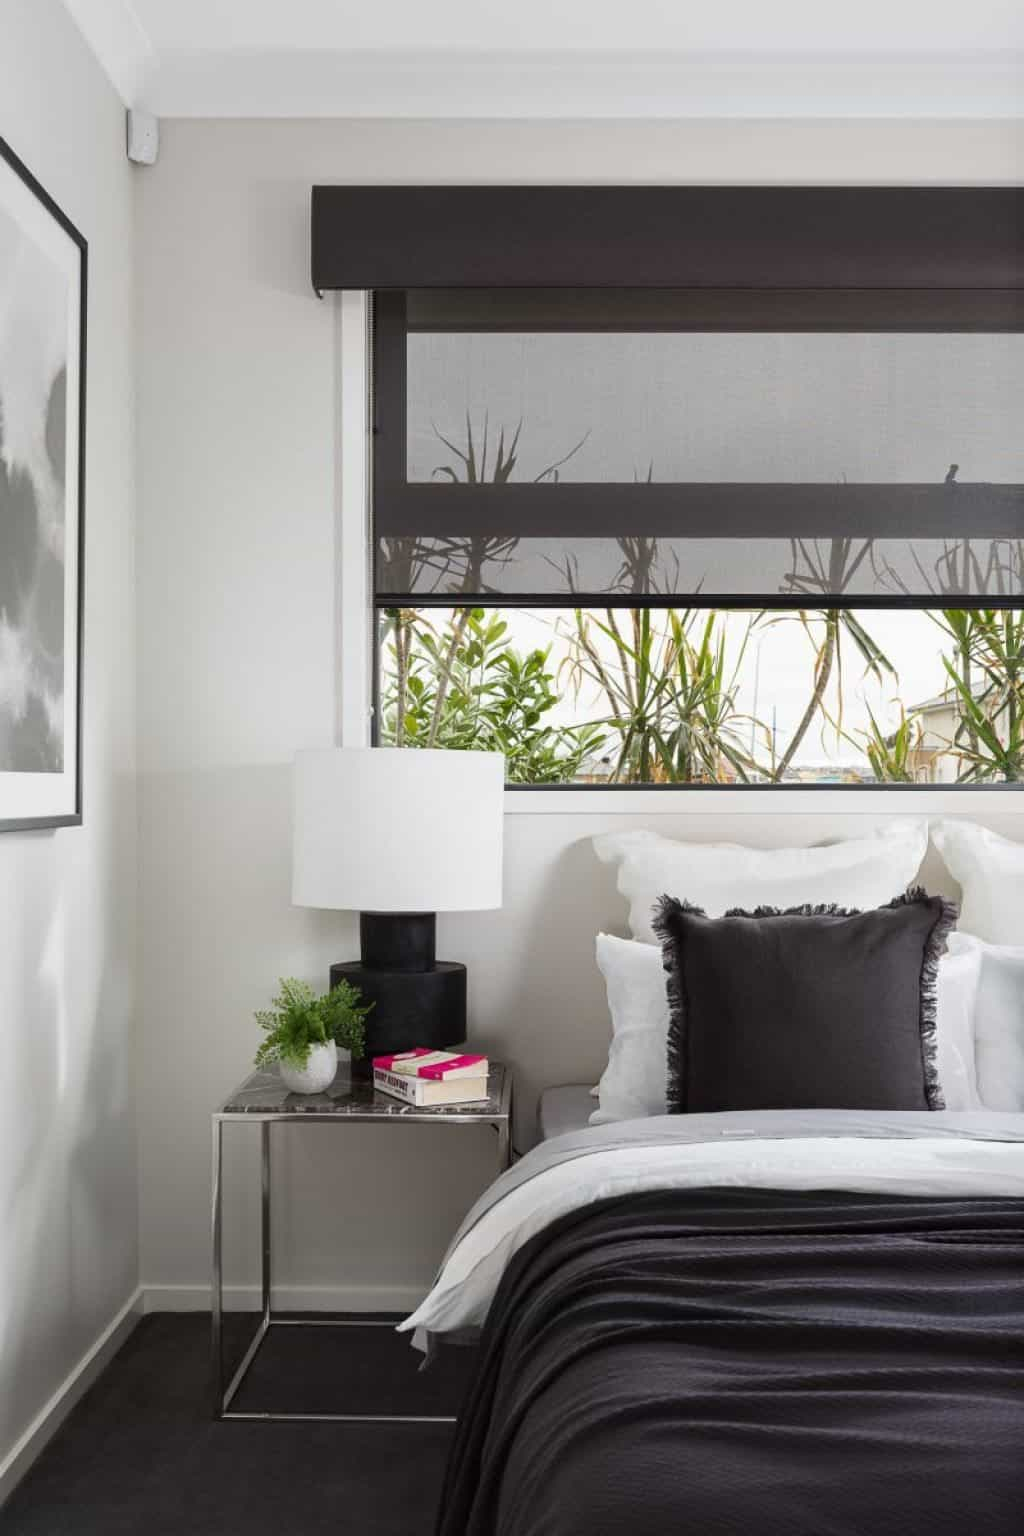 Bedroom With Black Roller Window Blinds The Benefits Of Window for 11 Smart Initiatives of How to Improve Modern Bedroom Blinds